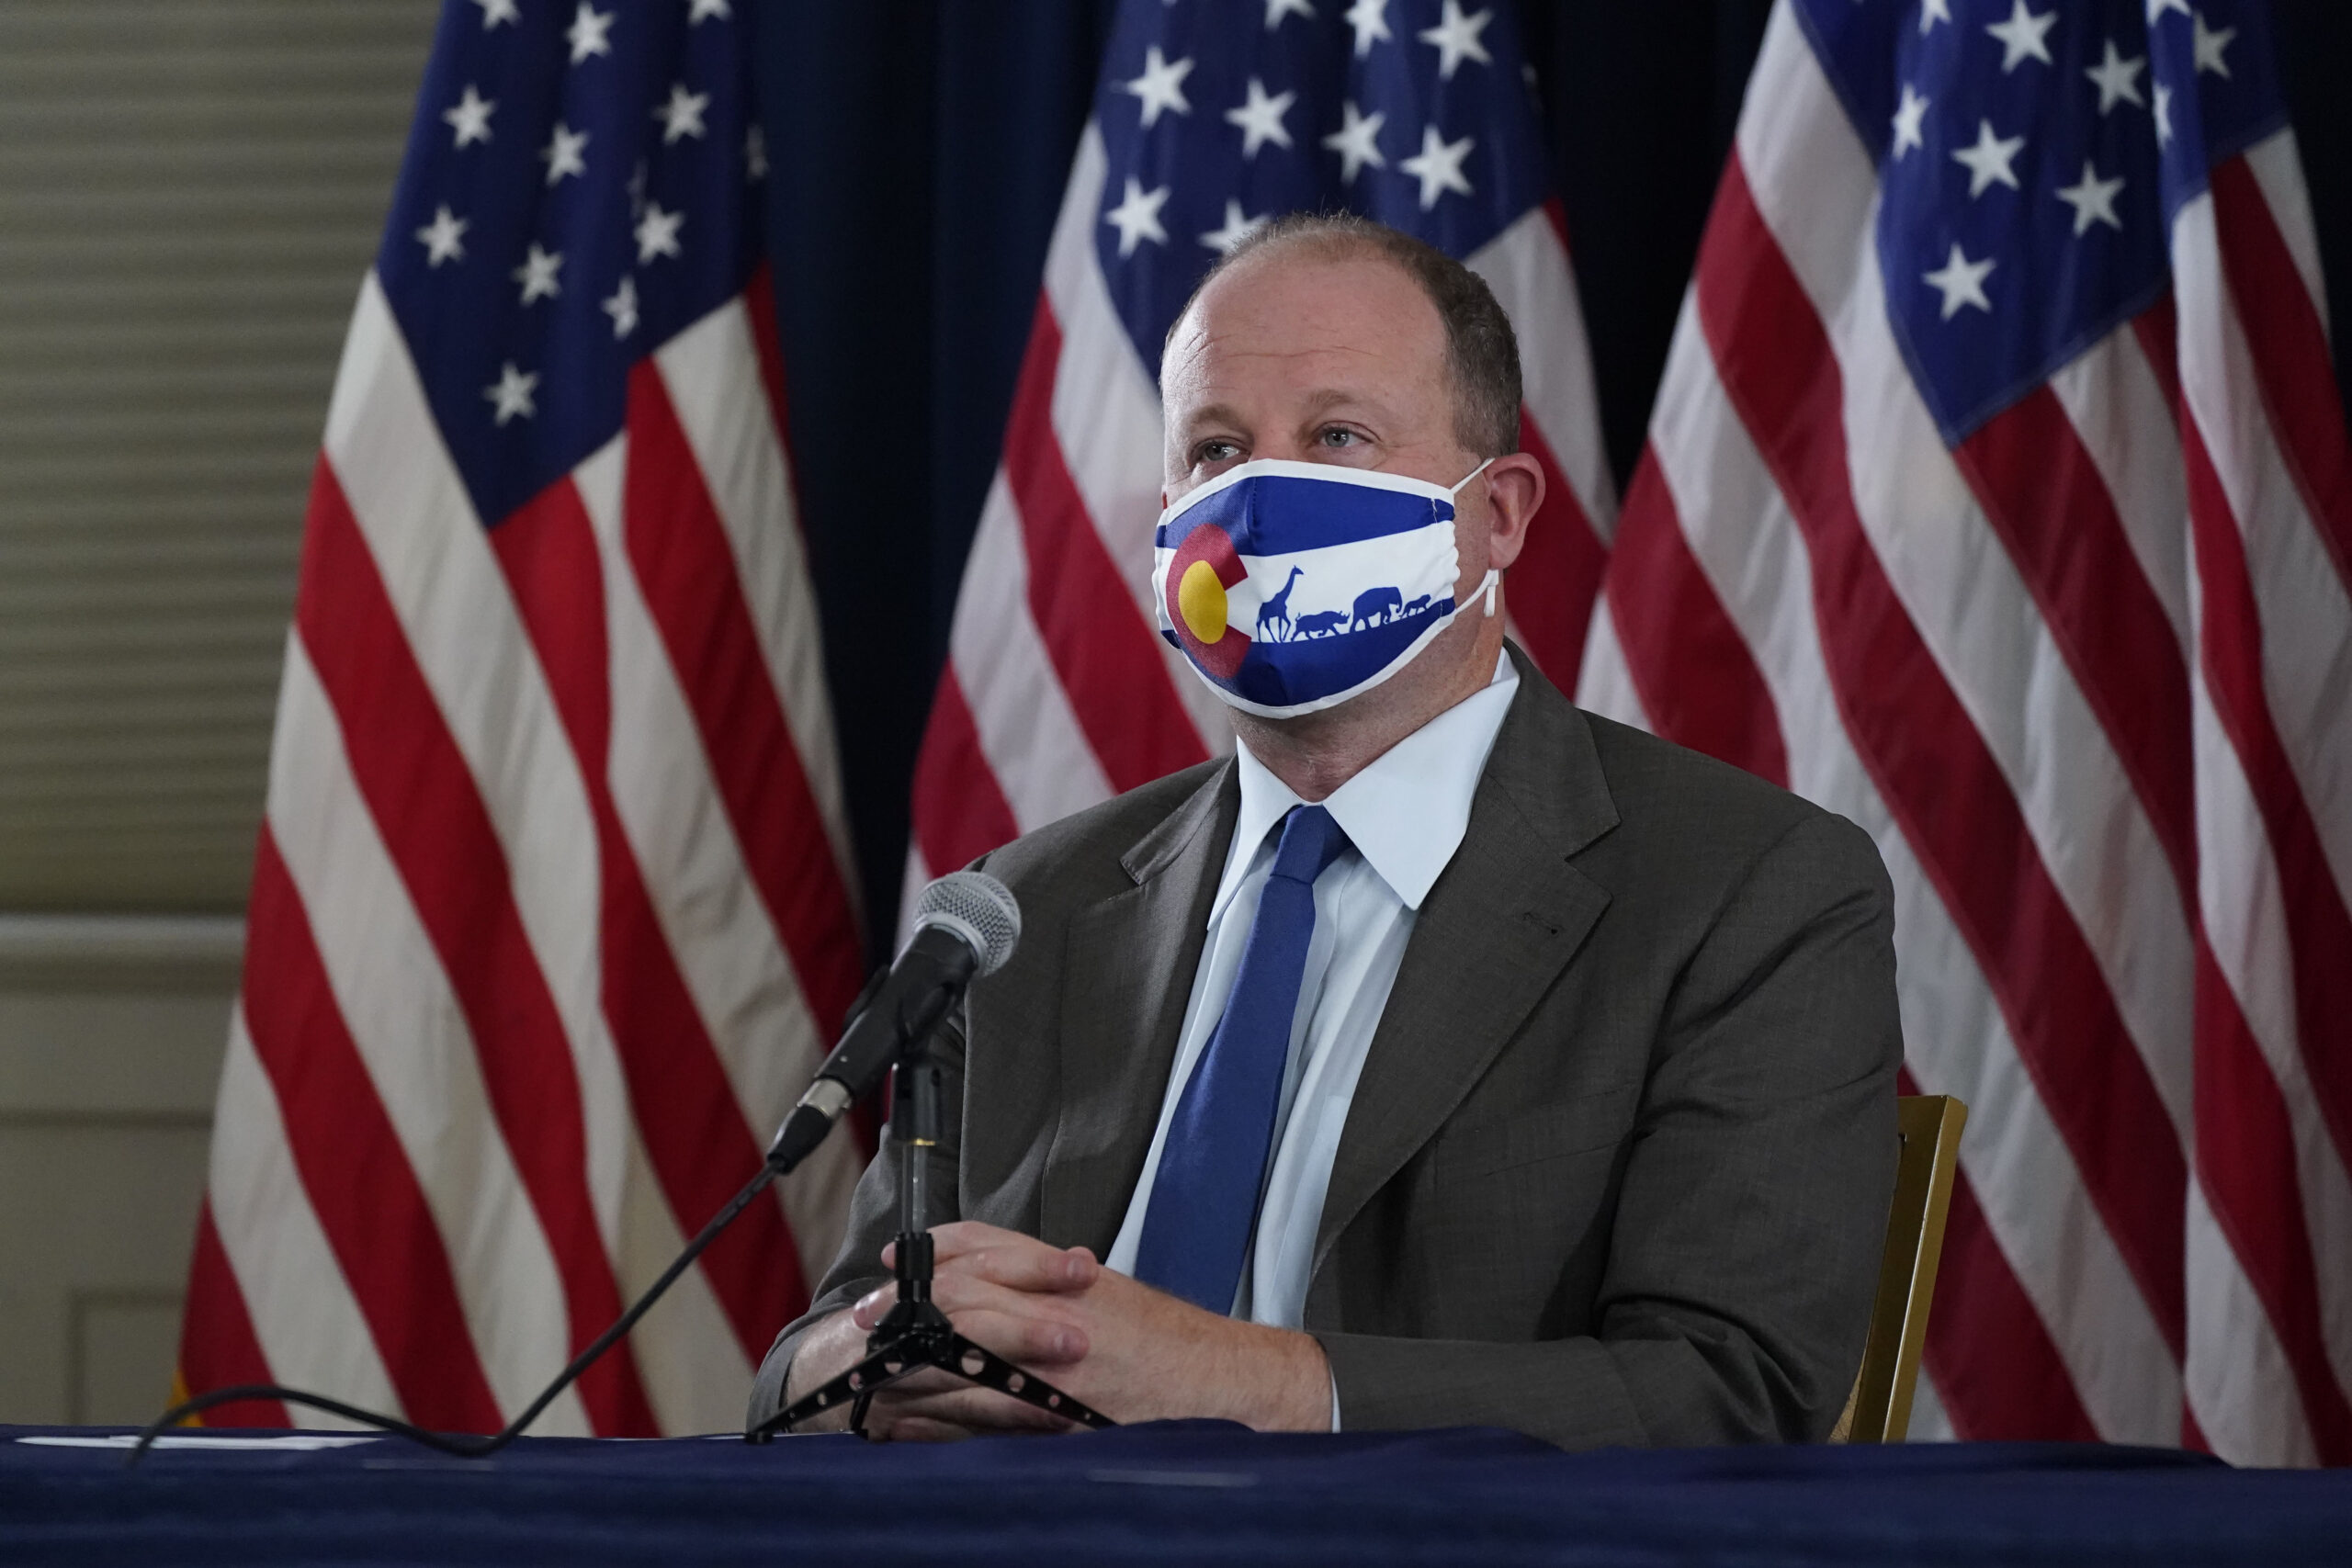 Colorado Gov. Jared Polis in a face mask.